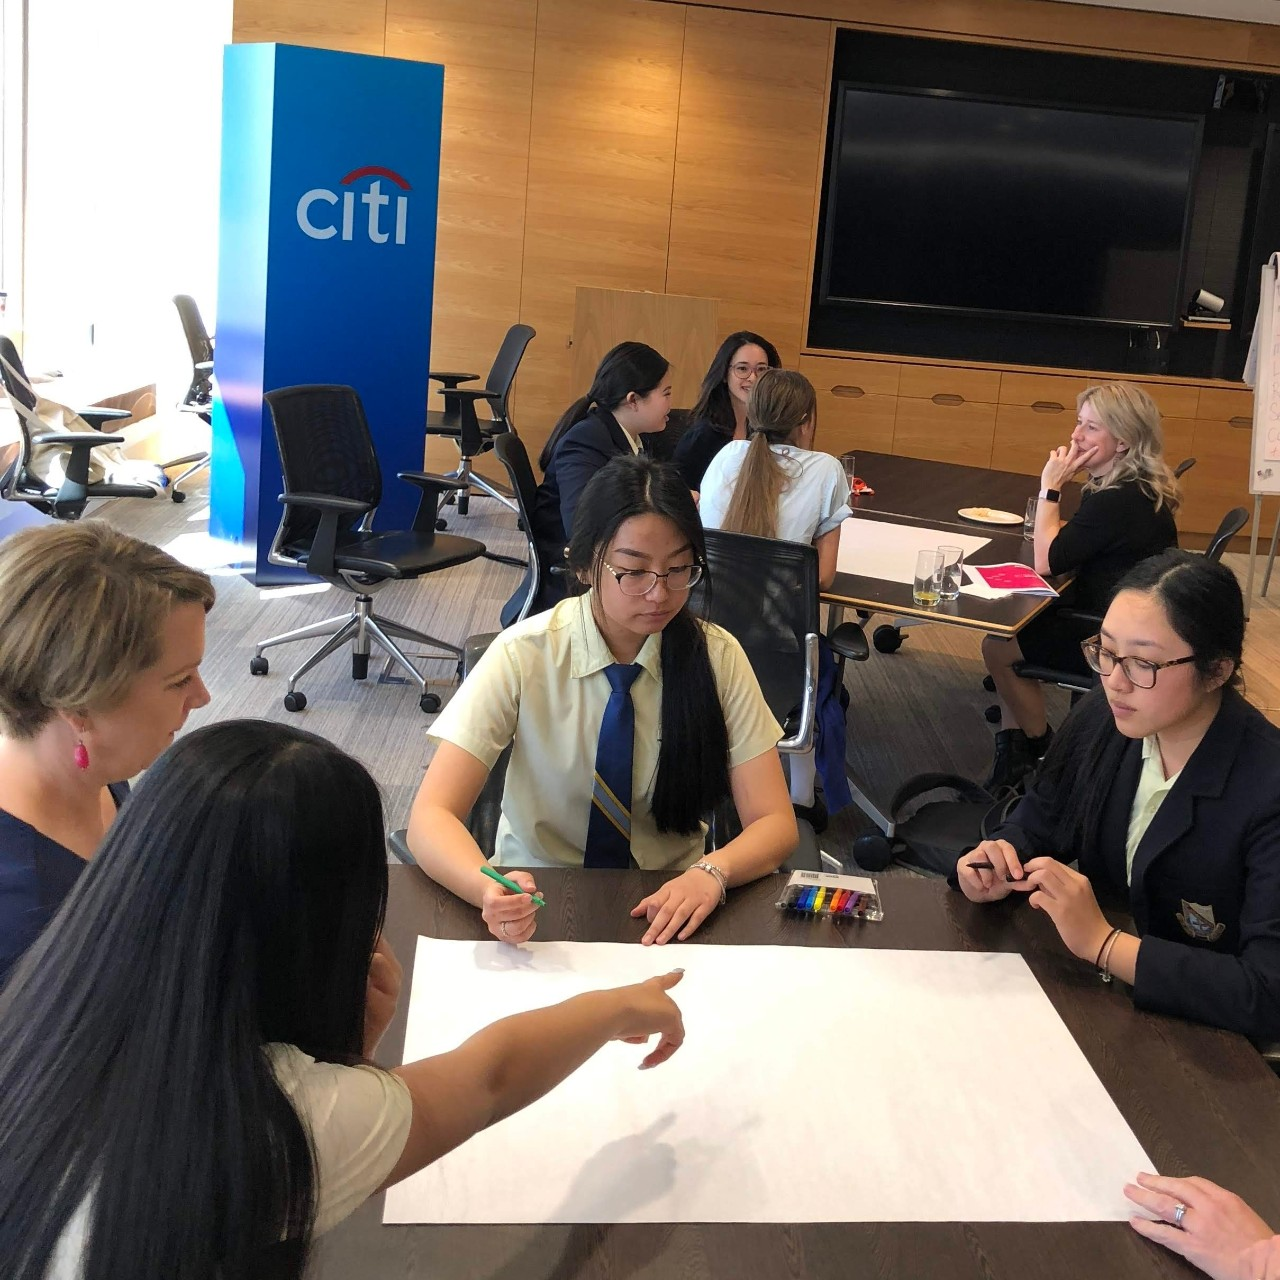 Students in groups at Citi bank